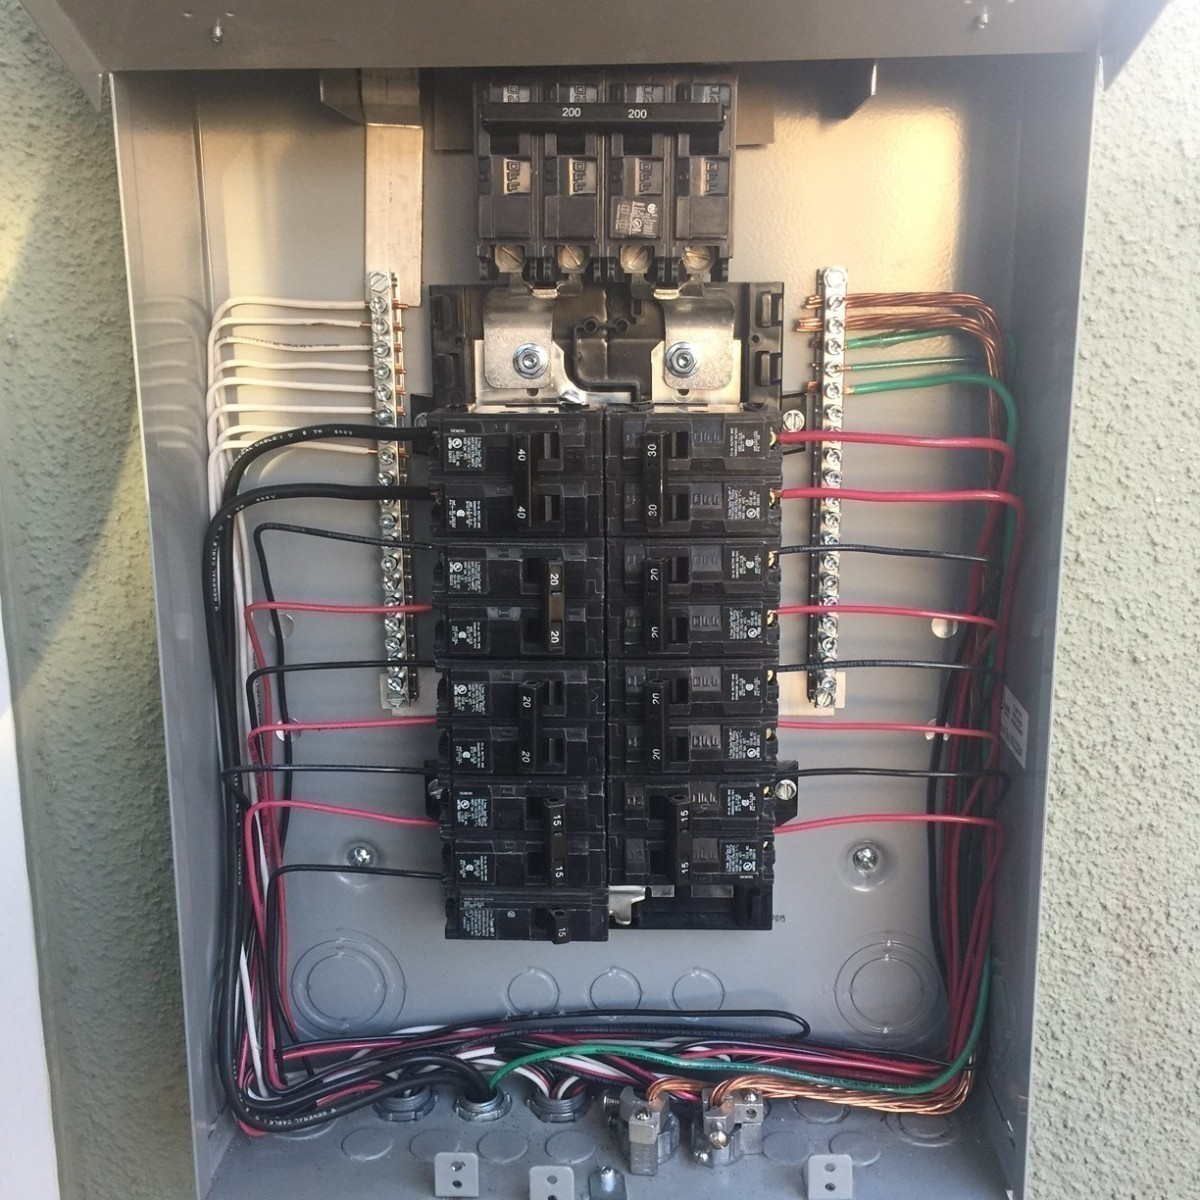 Romex Cable Wired Into The Circuit Breaker